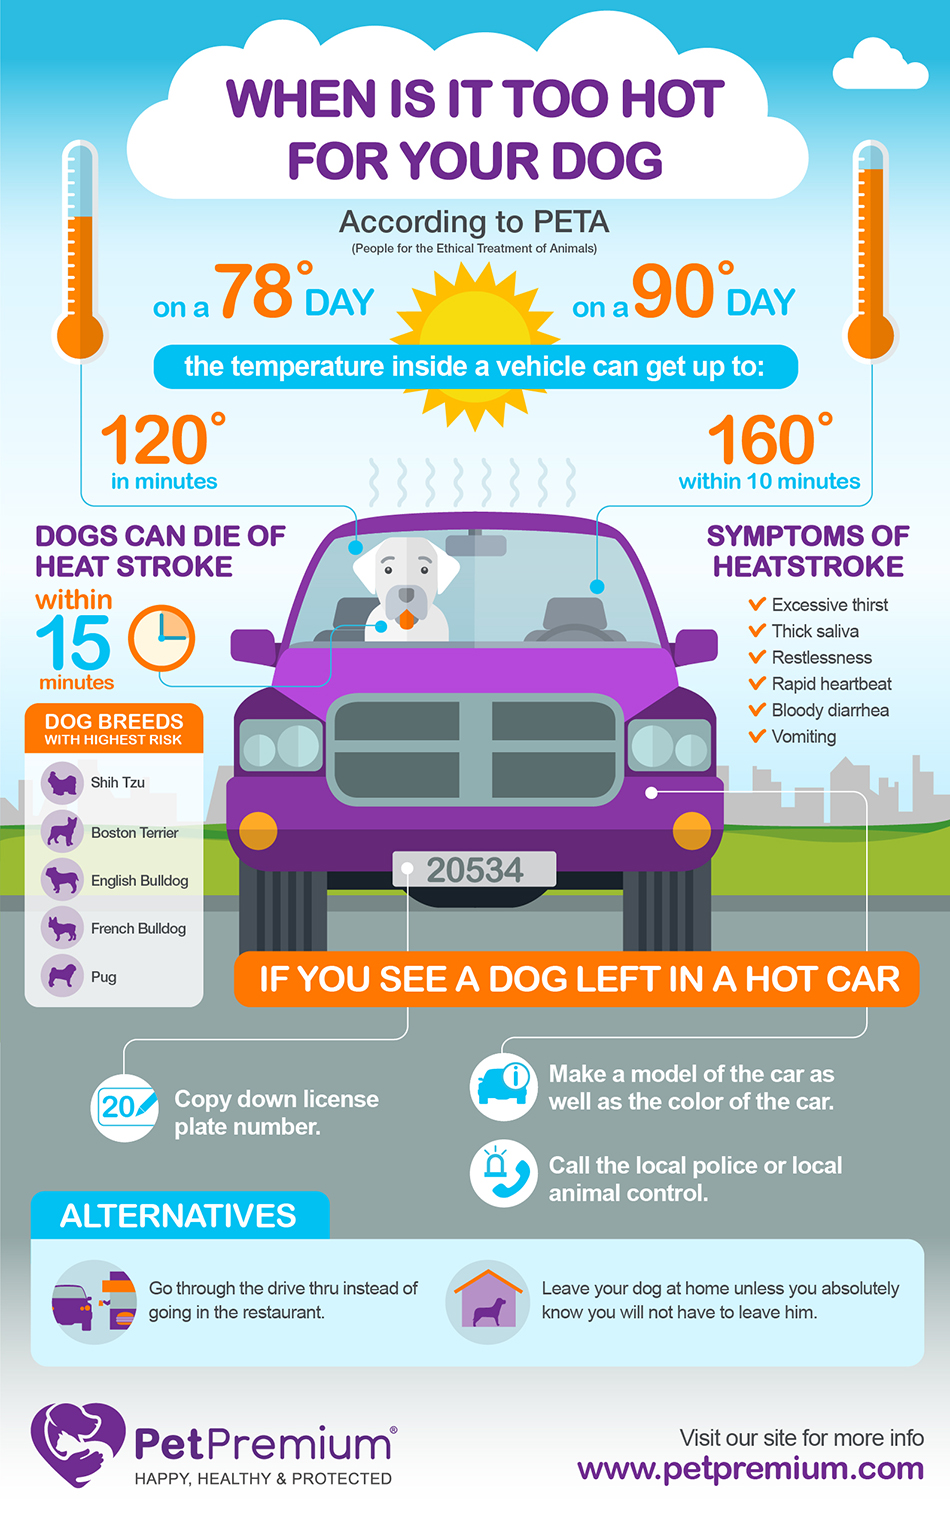 Heat Stroke in Dogs Infographic: When is it Too Hot?